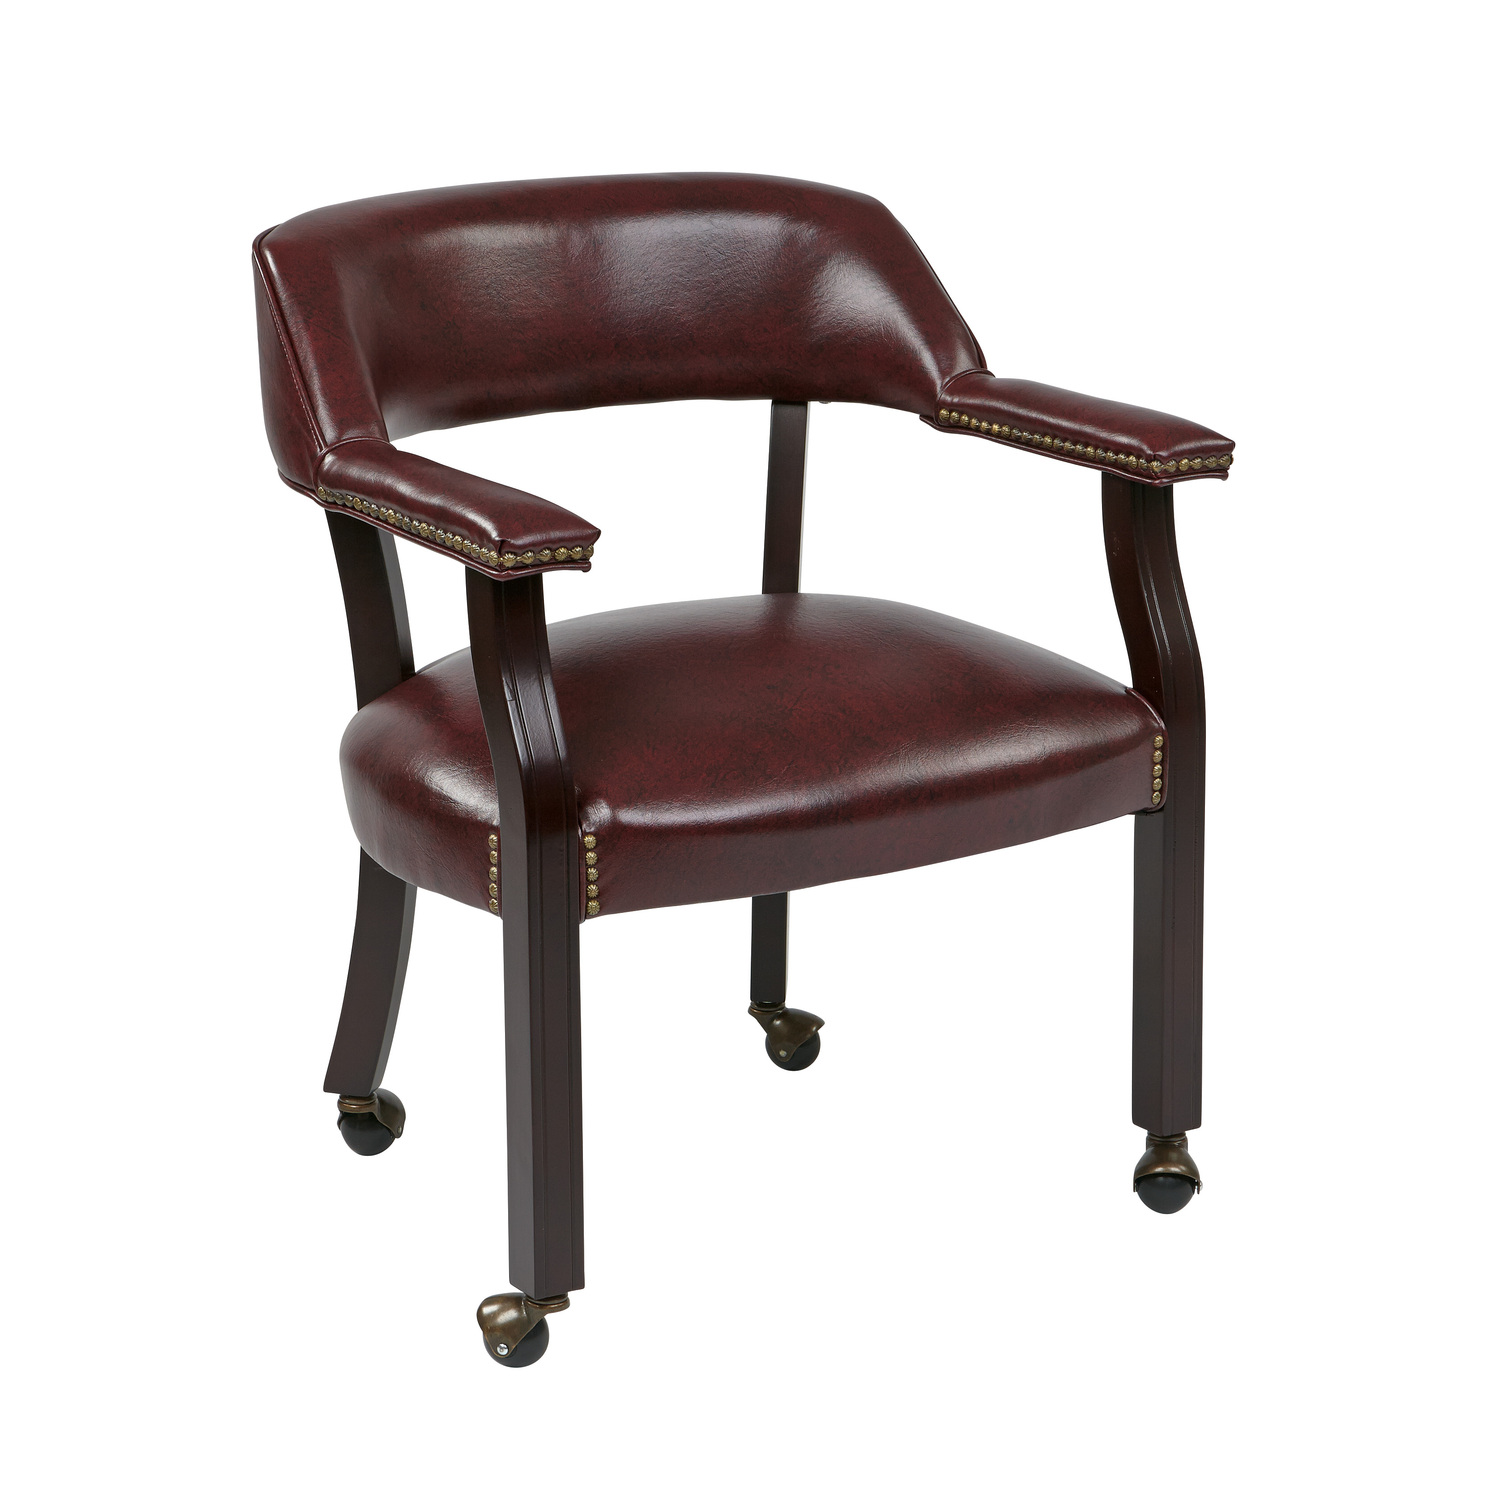 Office Star Traditional Guest Chair By OJ Commerce TV231 JT4